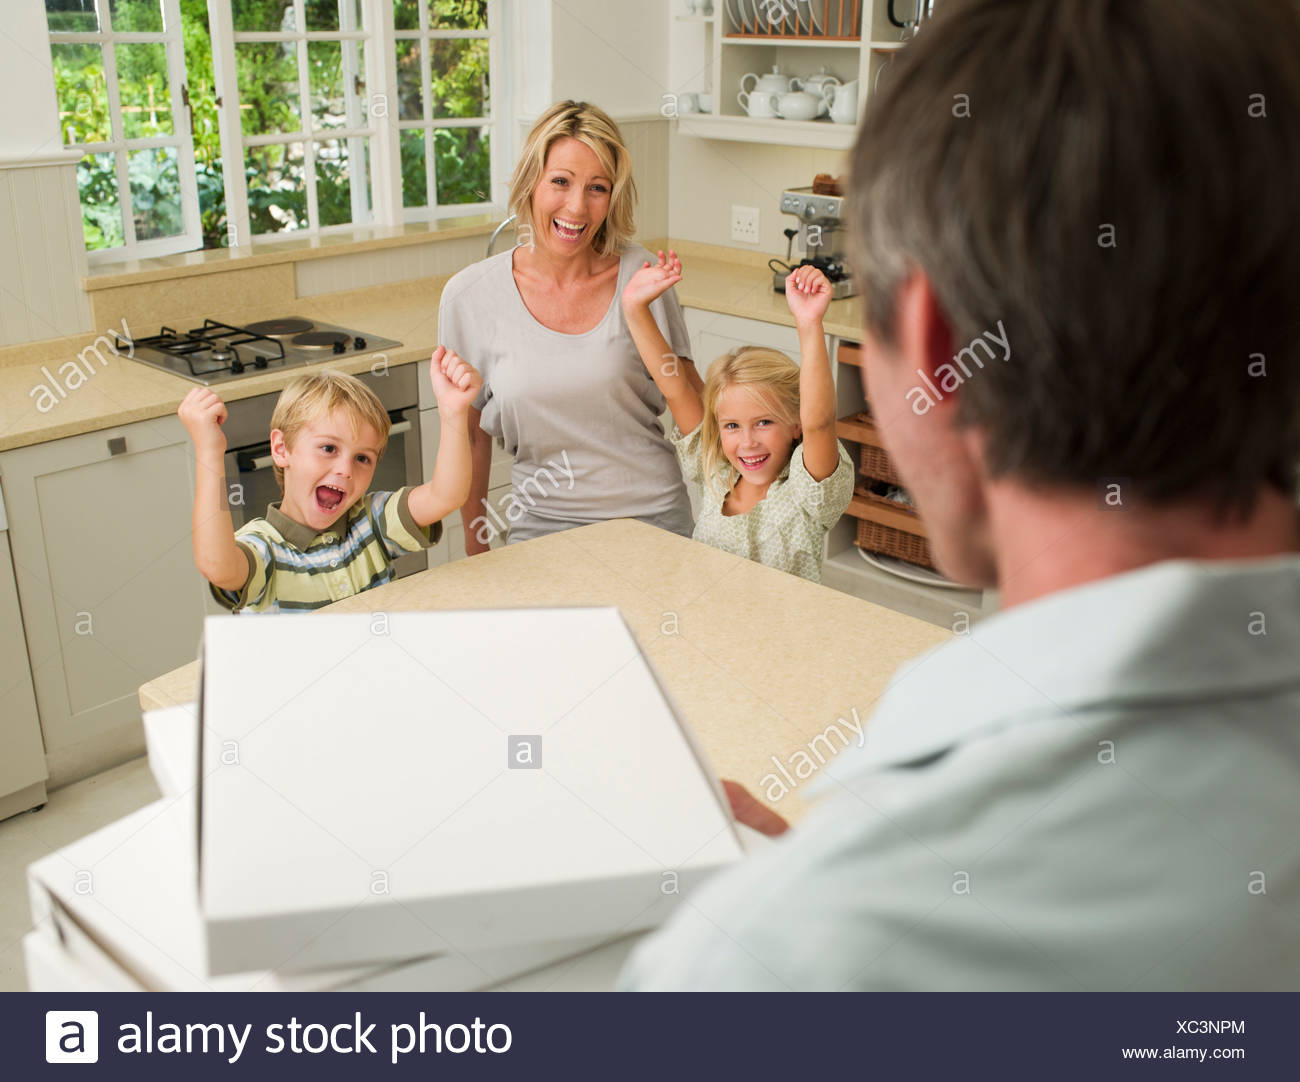 Man arriving in domestic kitchen with pizza boxes and family cheering - Stock Image